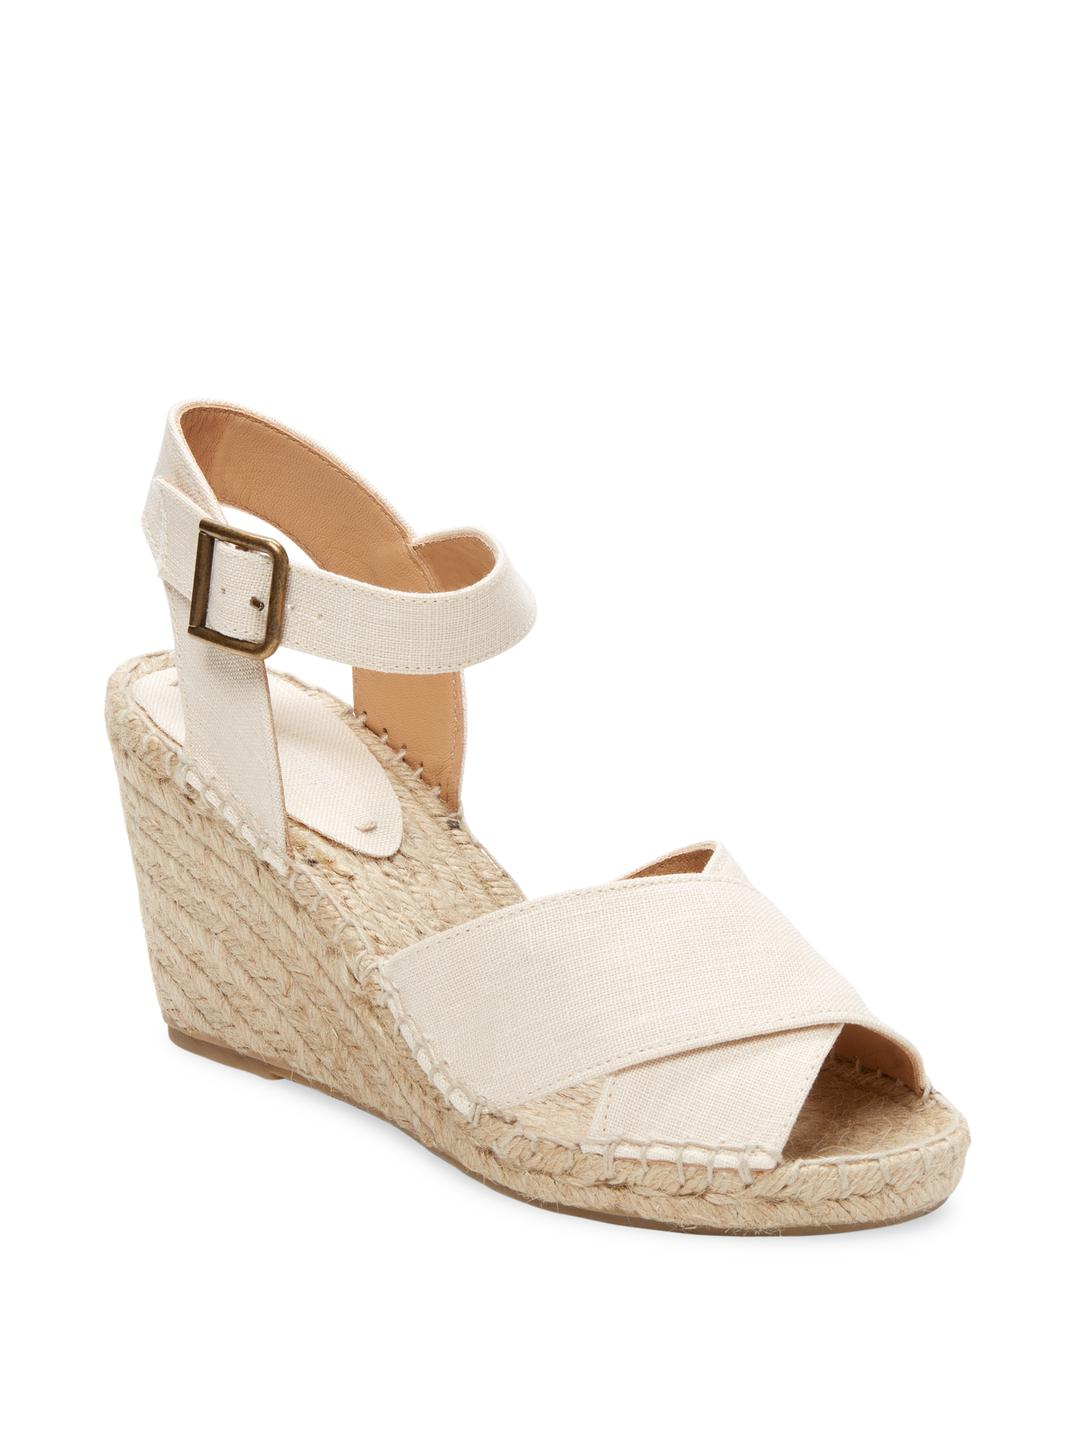 Soludos Sonia Wedge Sandals cheap price fake discount cost big discount fashionable cheap online WDs7Zy3